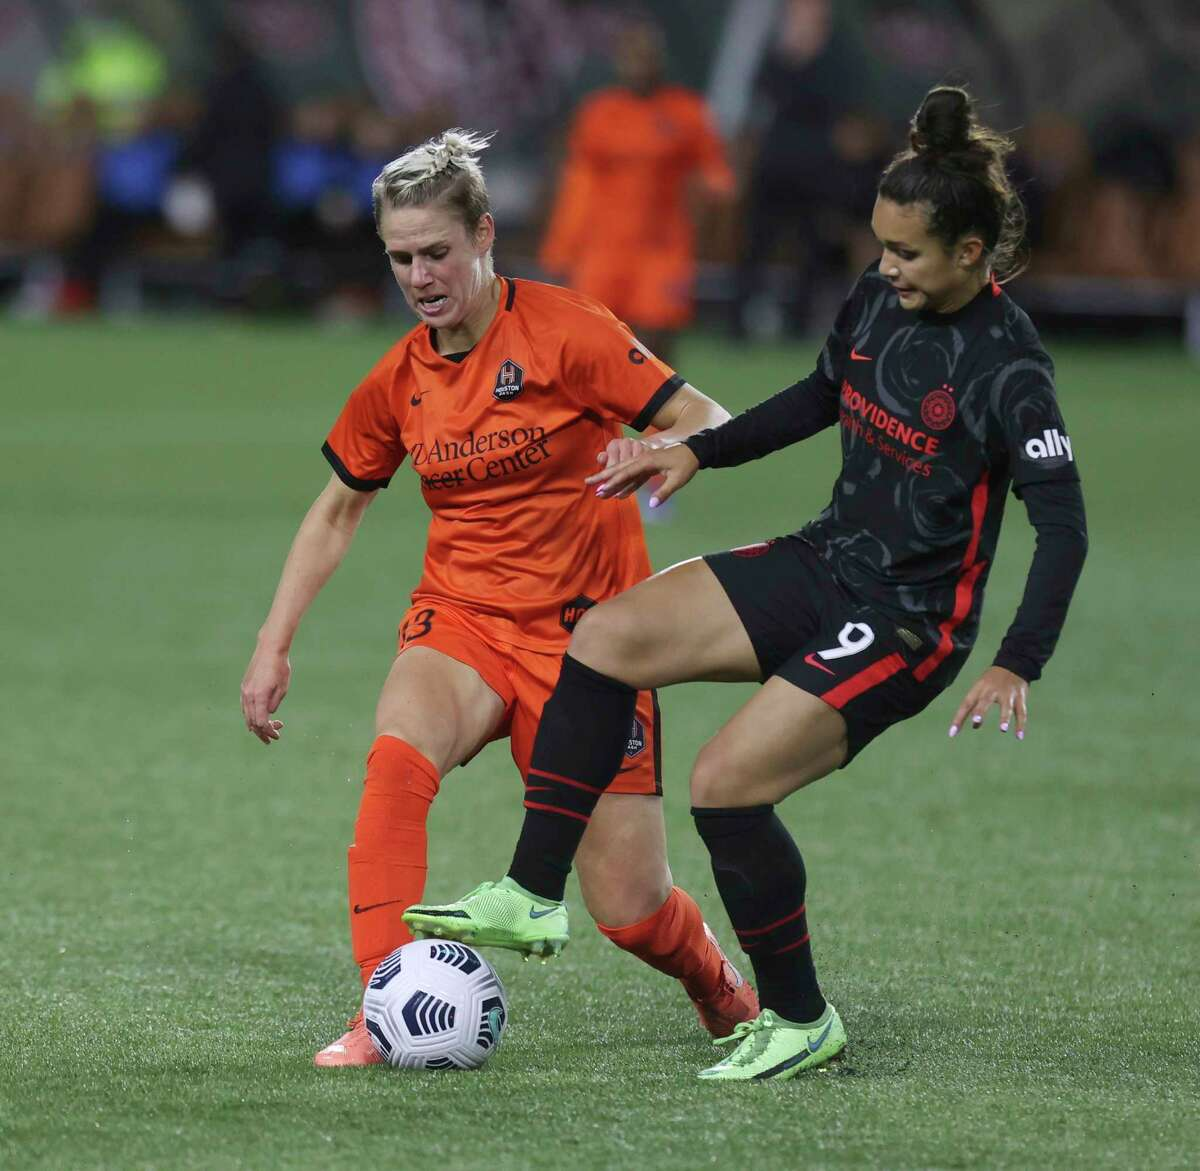 Portland Thorns forward Sophia Smith, right, and Houston Dash midfielder Sophie Schmidt compete for the ball during the second half of an NWSL match Wednesday in Portland, Ore.